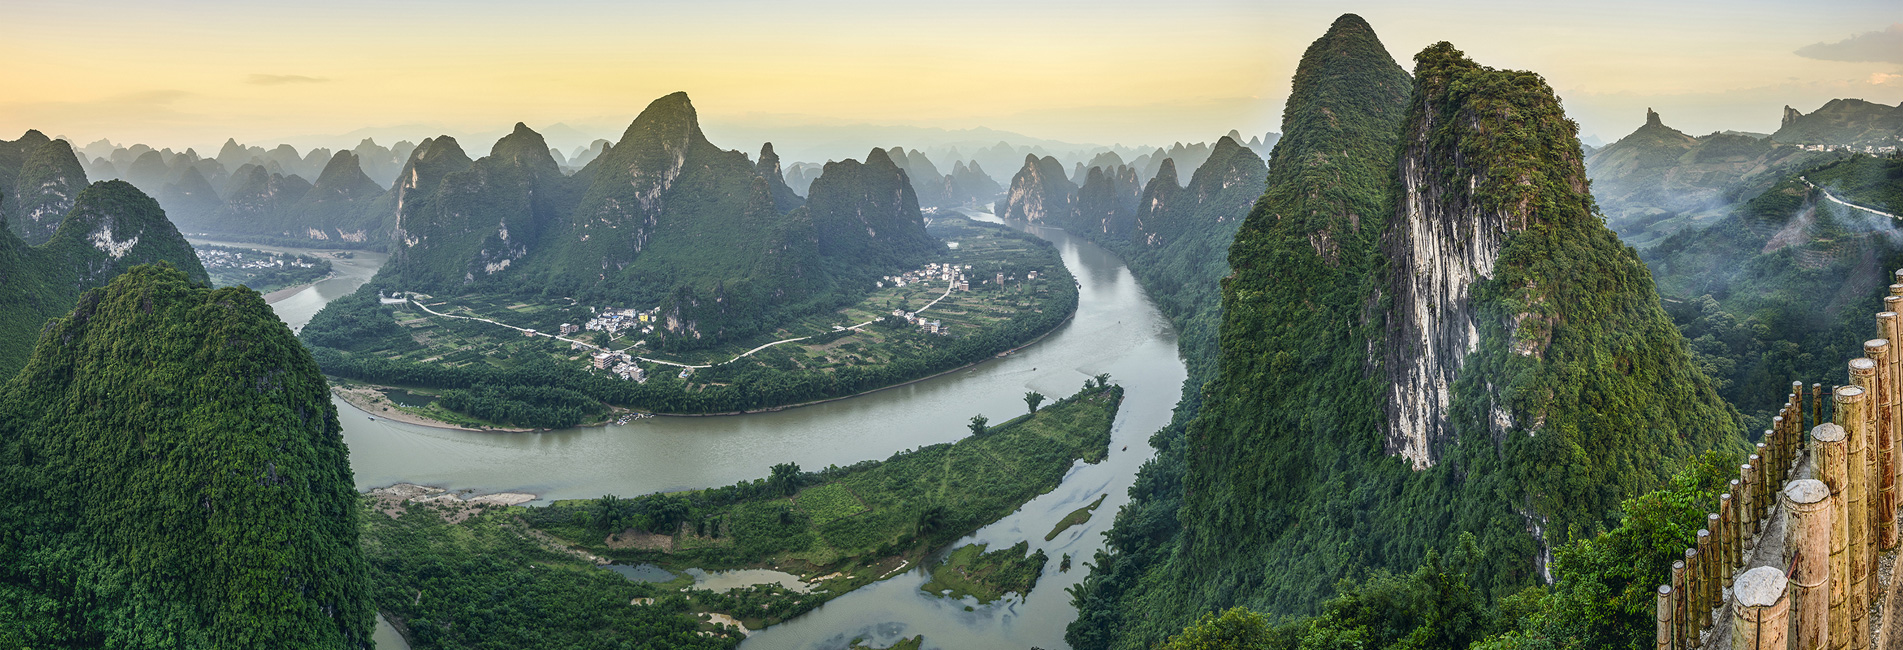 the karst landscape in Guilin, the Li River and mountains